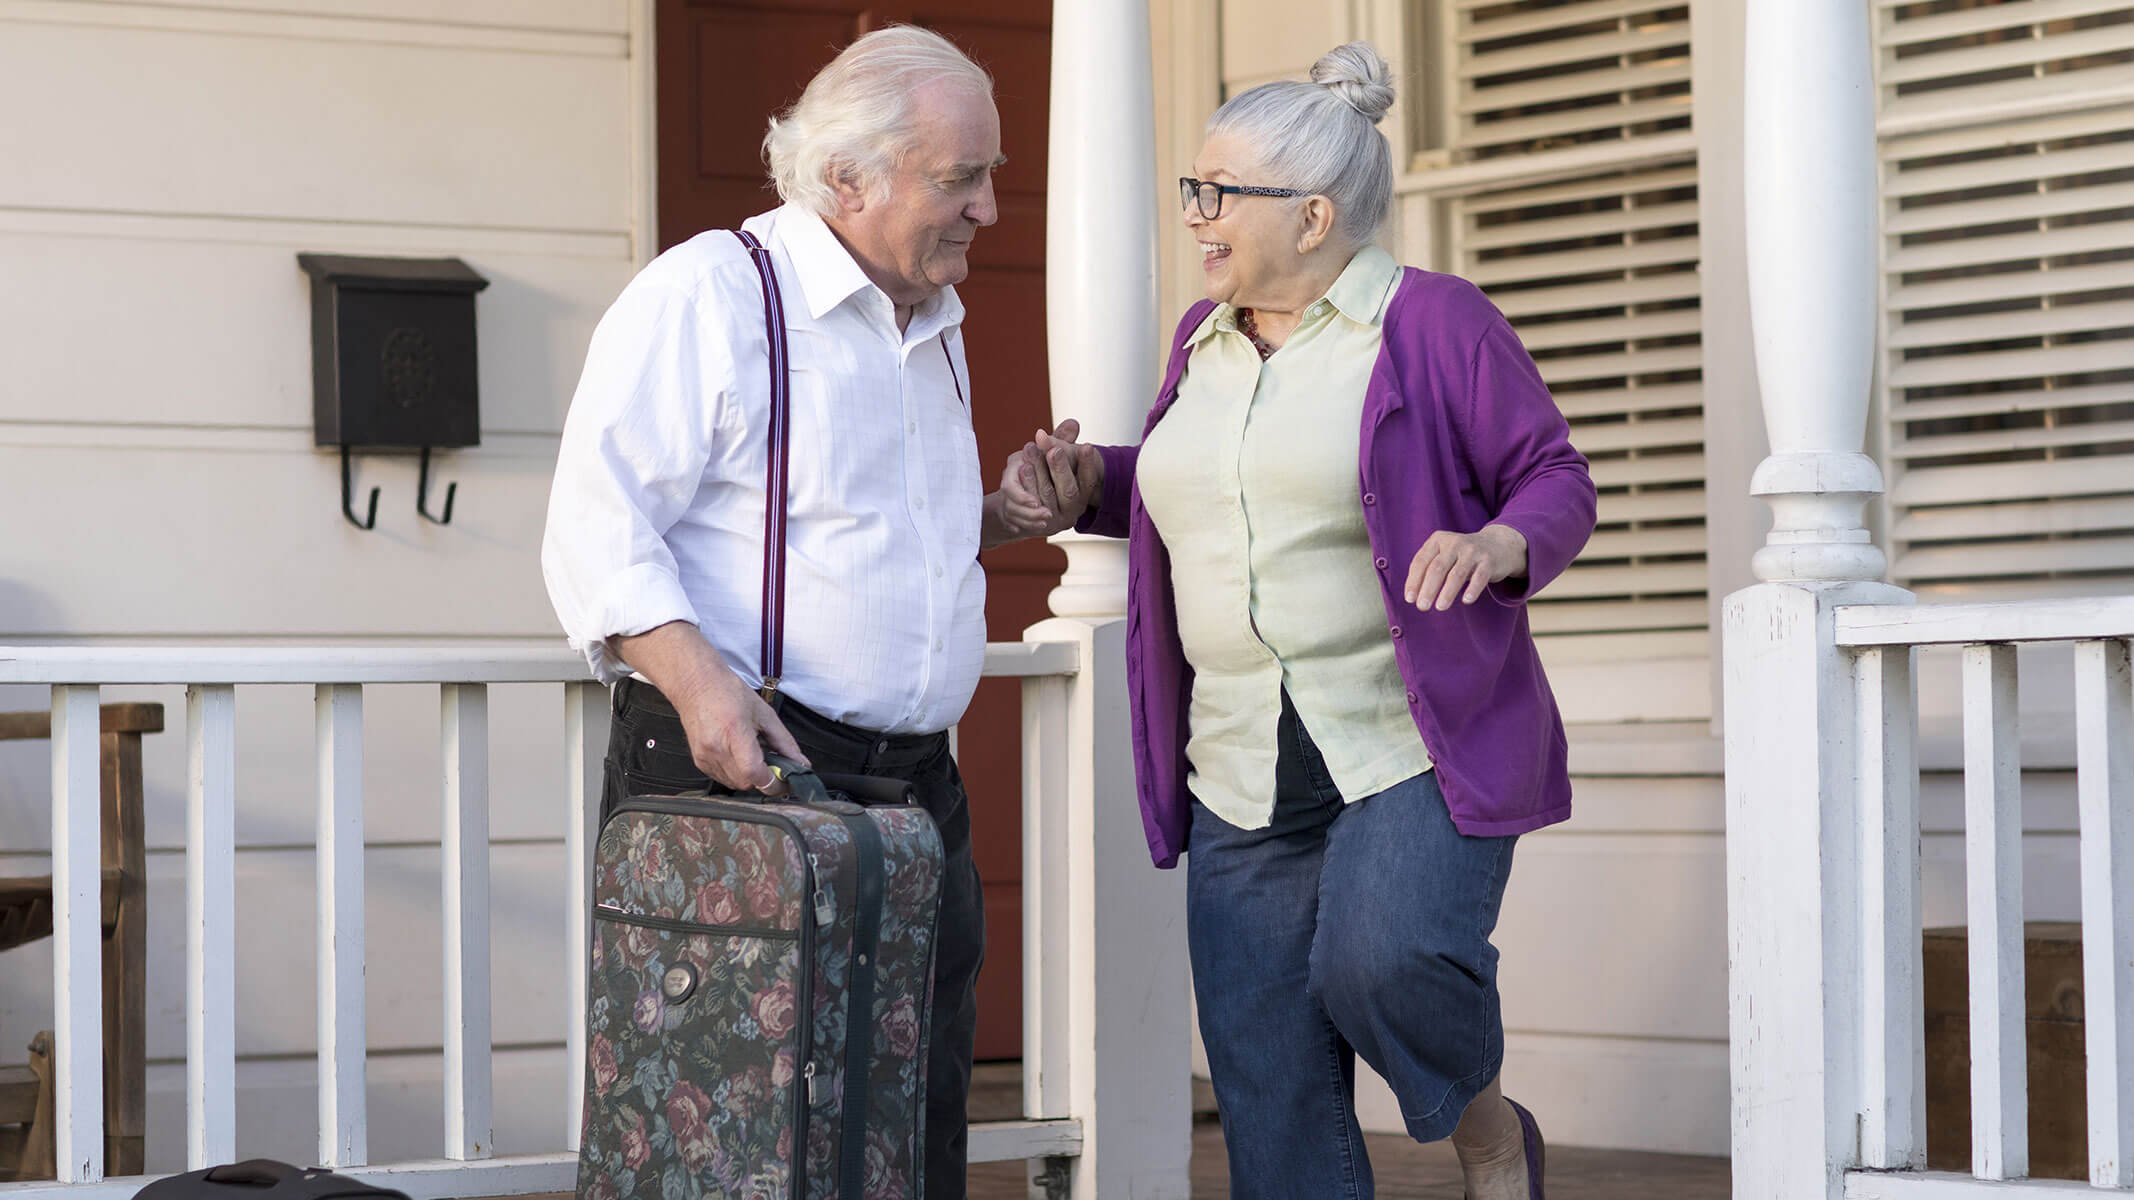 An elderly man helps his wife down the front steps while carrying a suitcase.